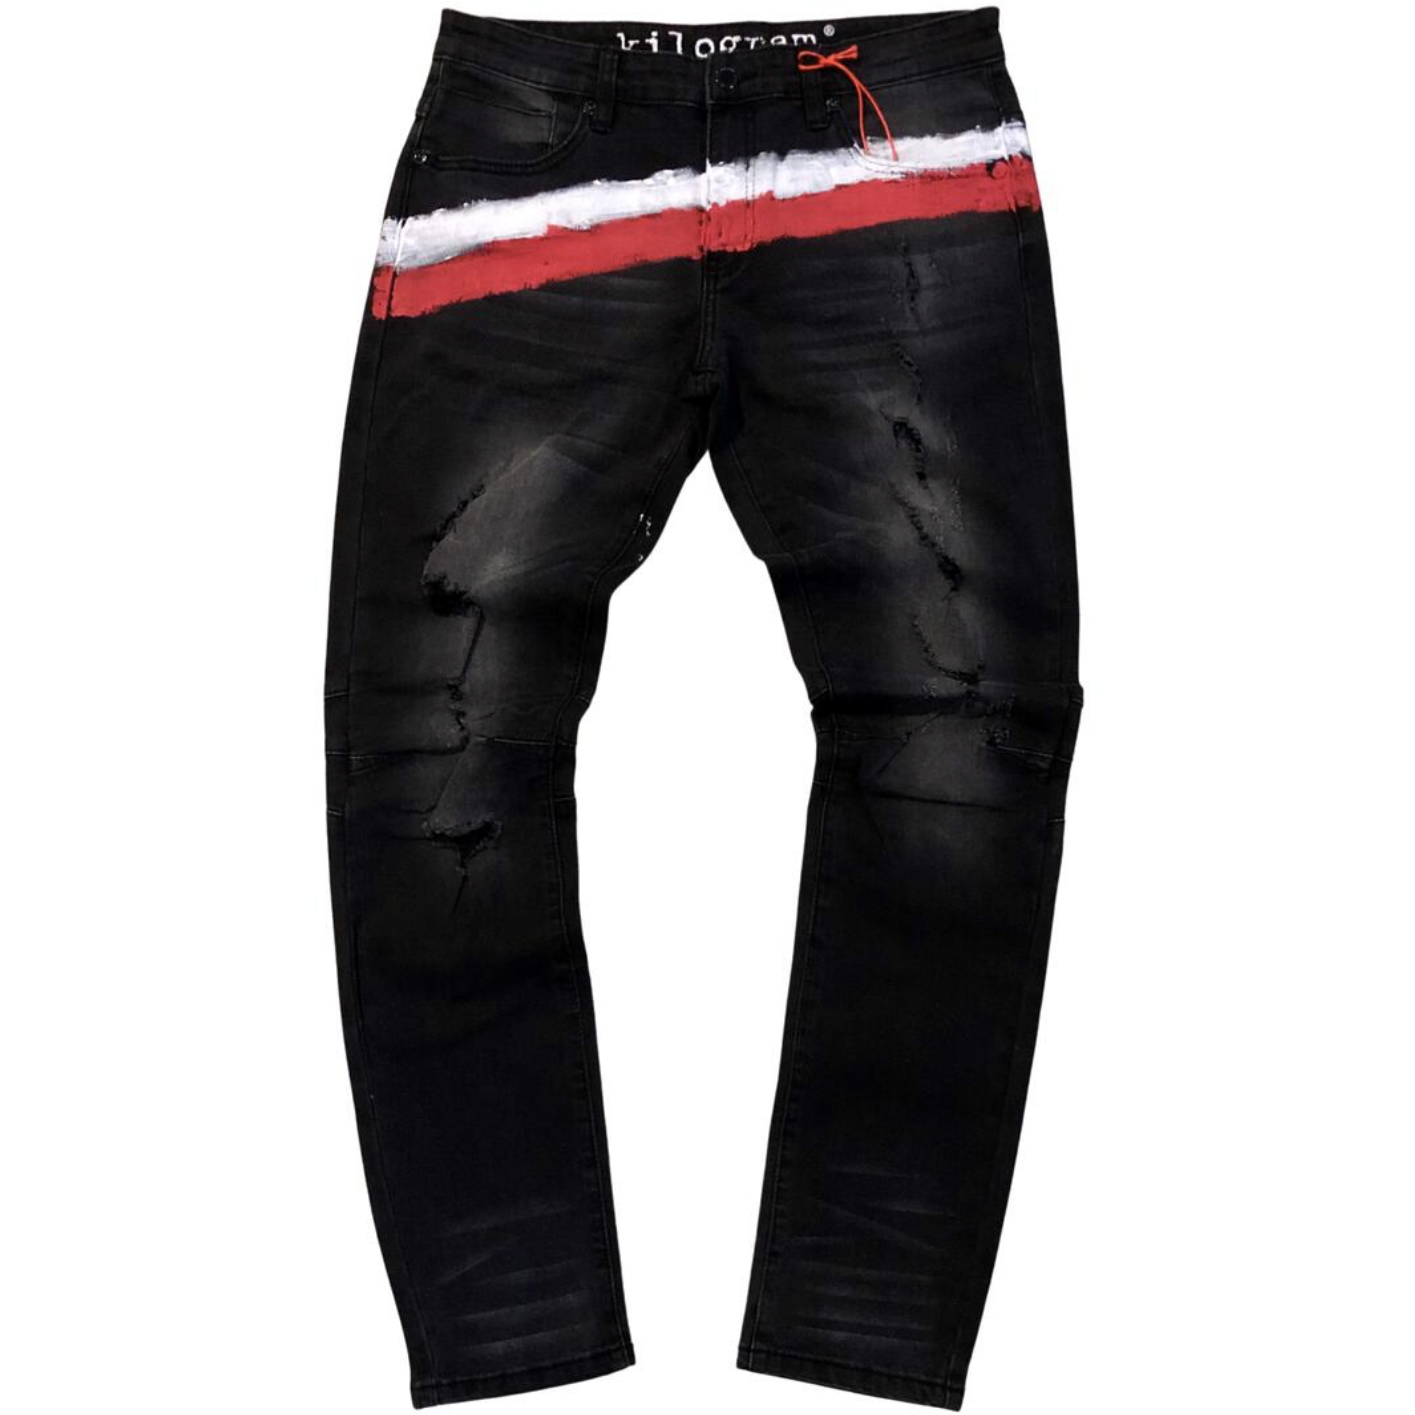 Kilogram Black Brush Painted Denim Jeans (KG10028)